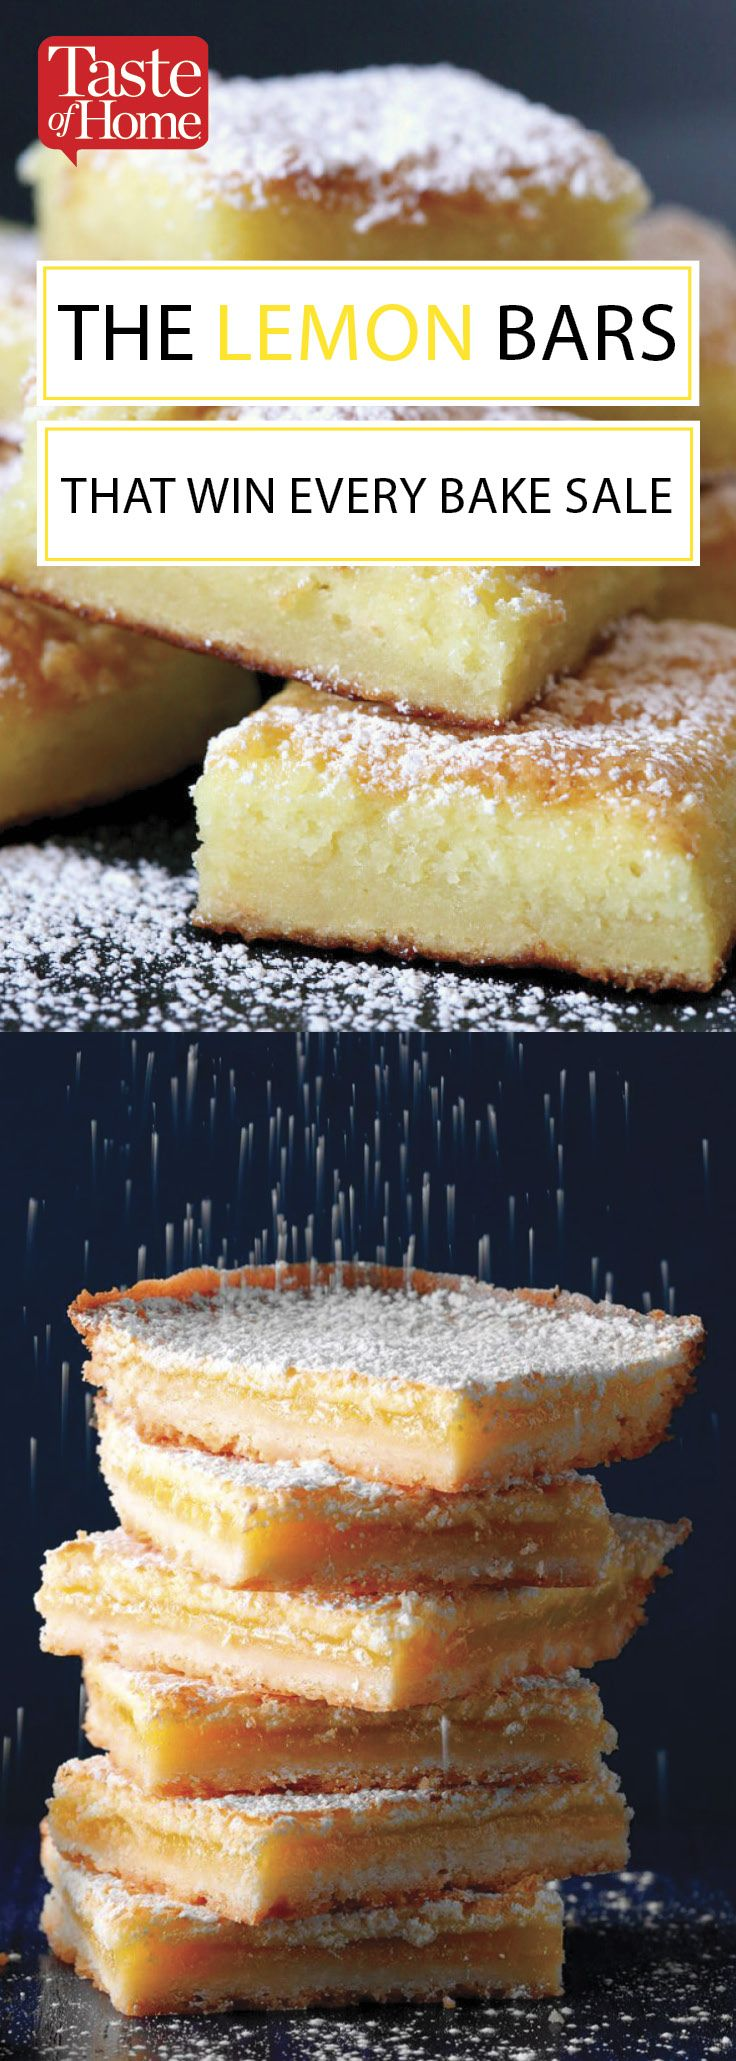 The Lemon Bars That Win Every Bake Sale #bakesaleideas